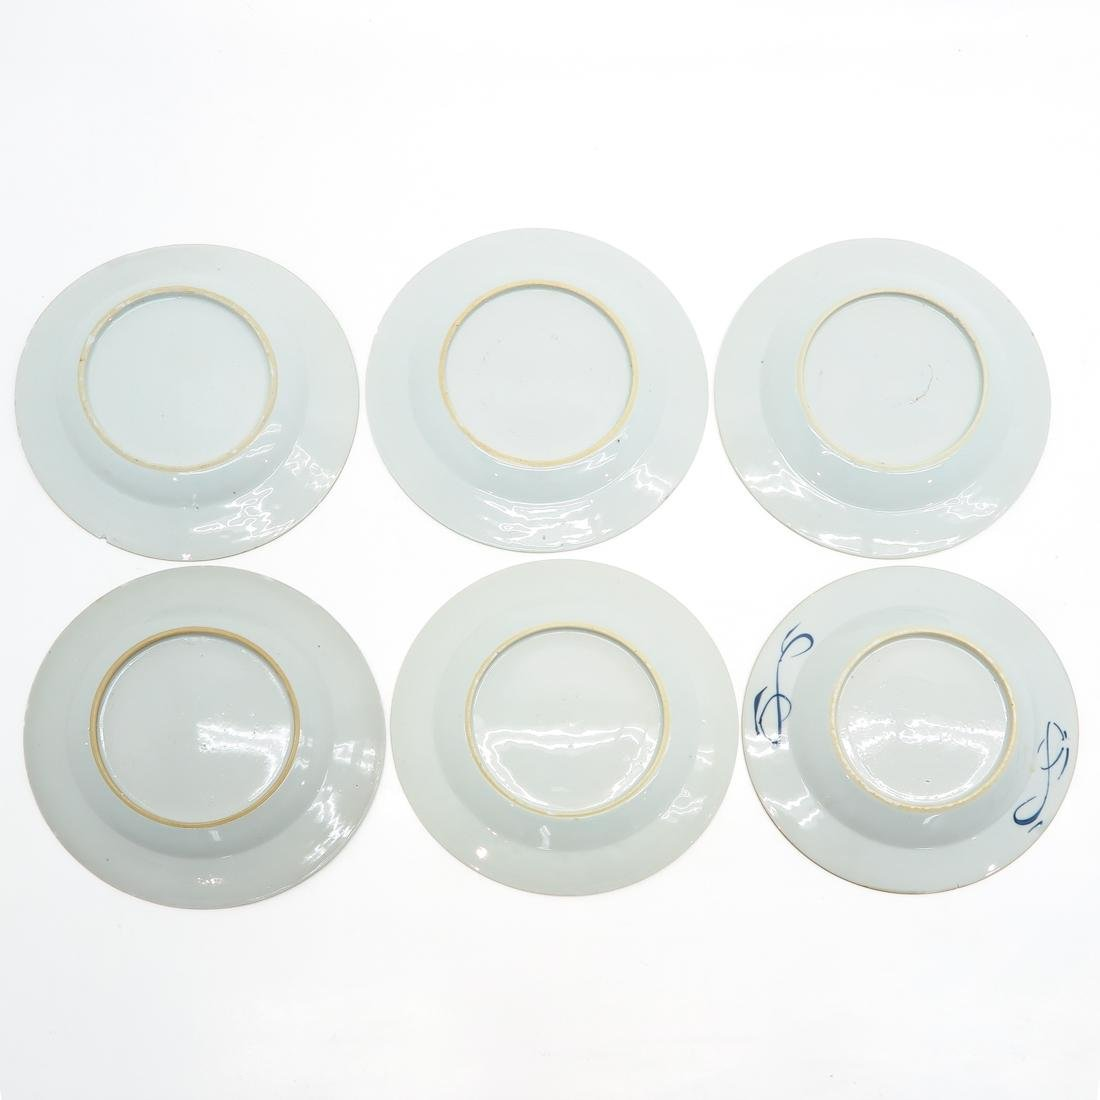 Lot of 6 Plates - 2